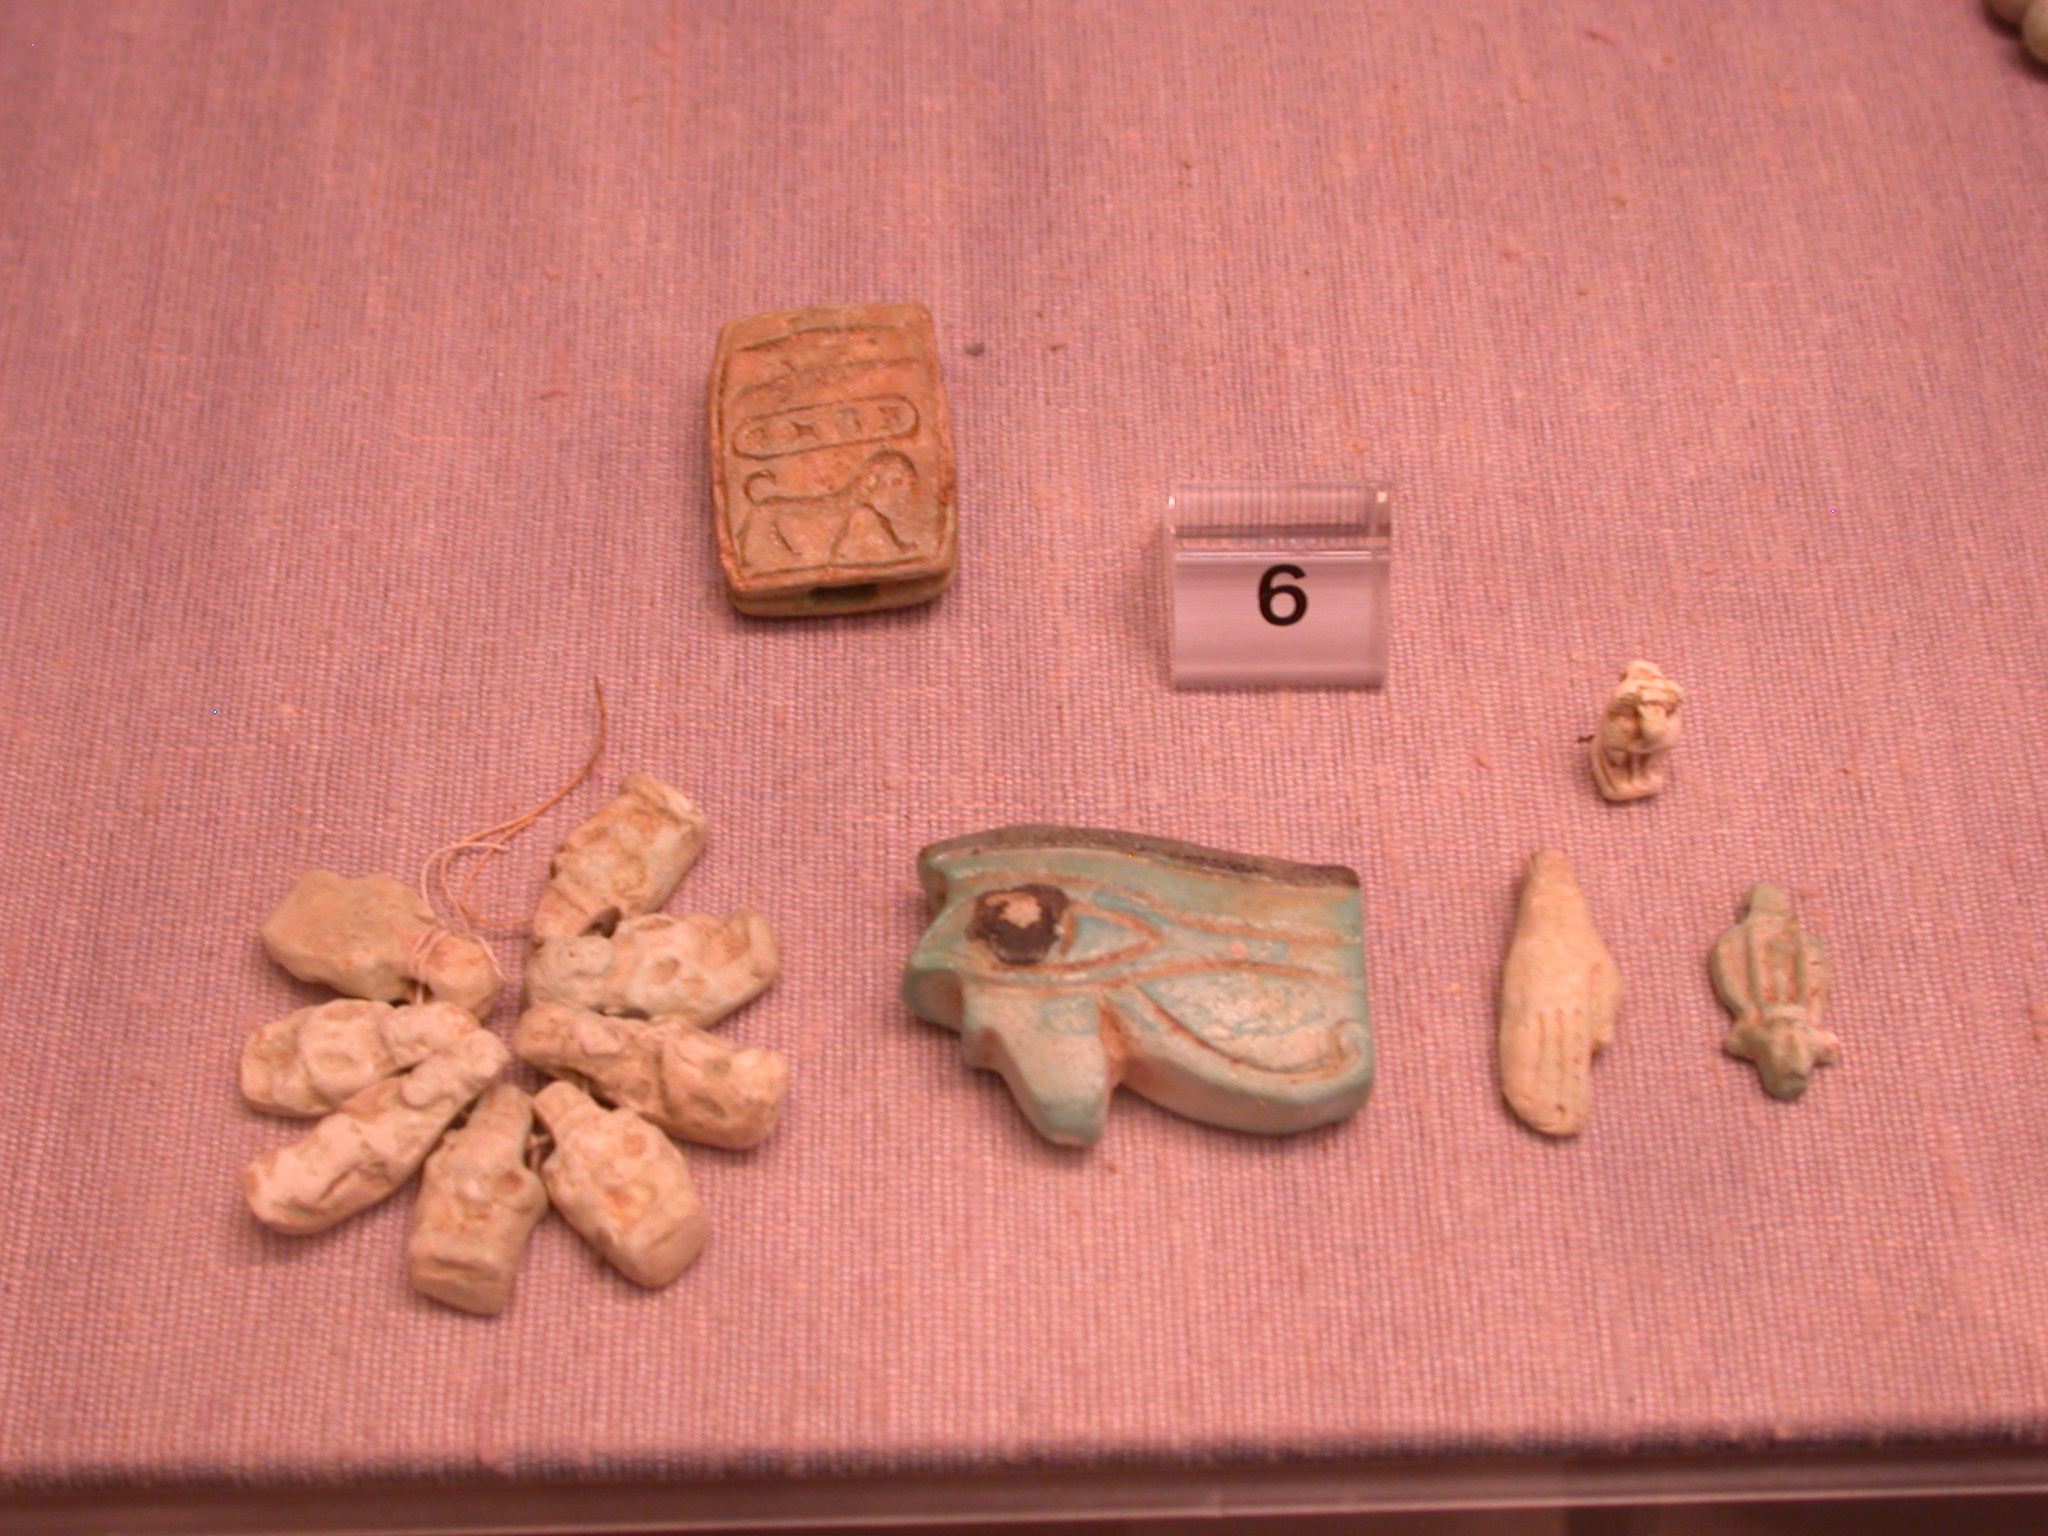 Faience Amulets in the Form of Wedjat Eyes, a Hand, a Sistrum, Hathor and Bes Figures, 25th Dynasty Sudan, Fitzwilliam Museum, Cambridge, England